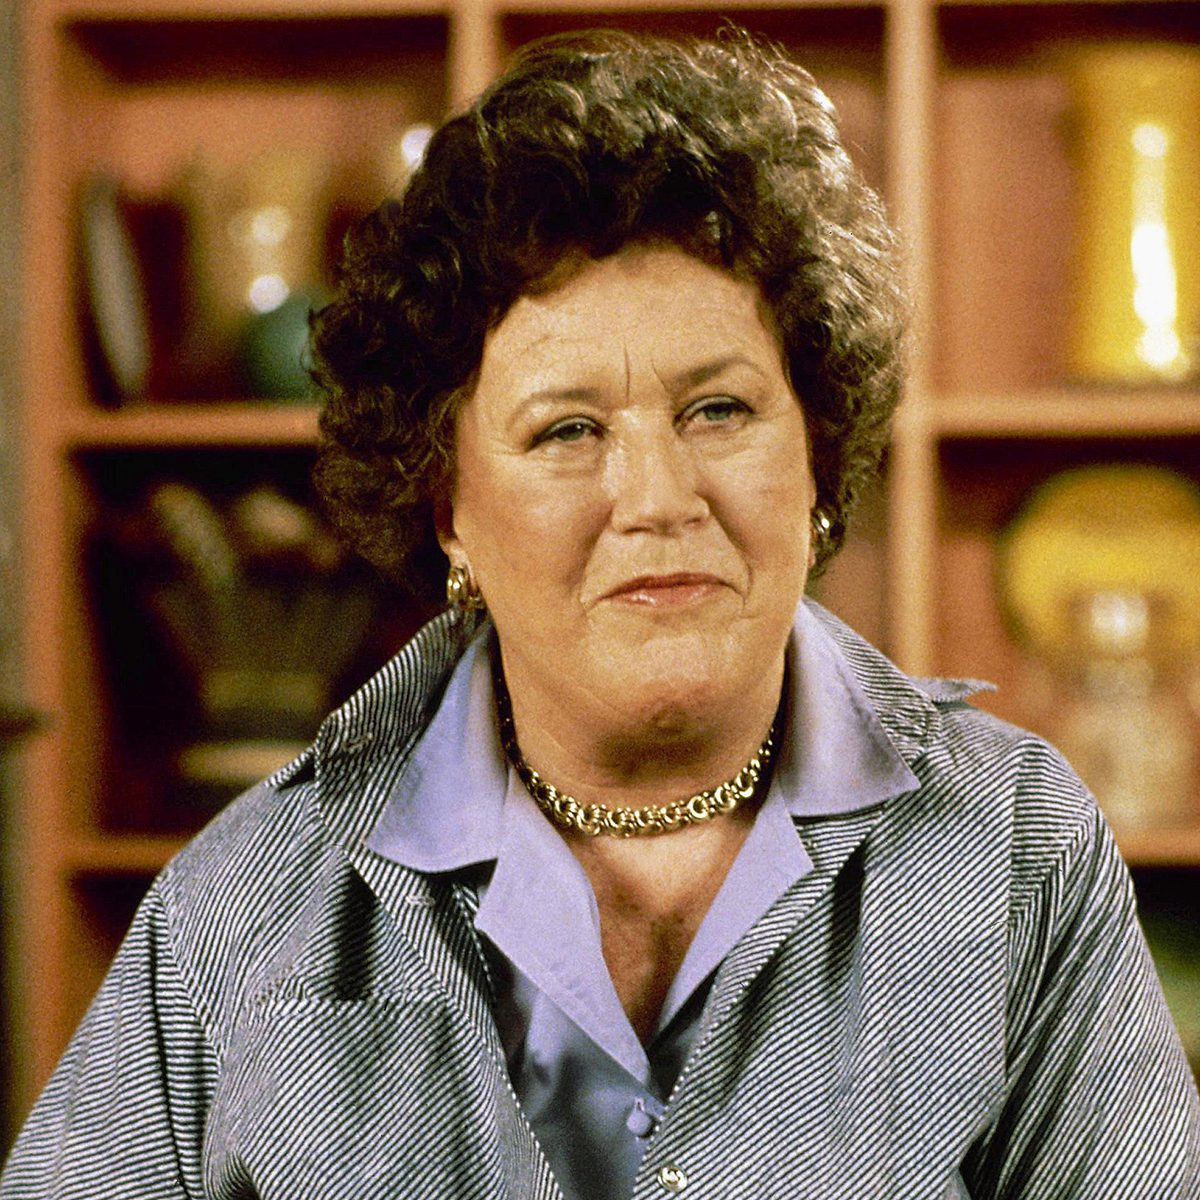 Chef and cookbook author Julia Child shown in 1981